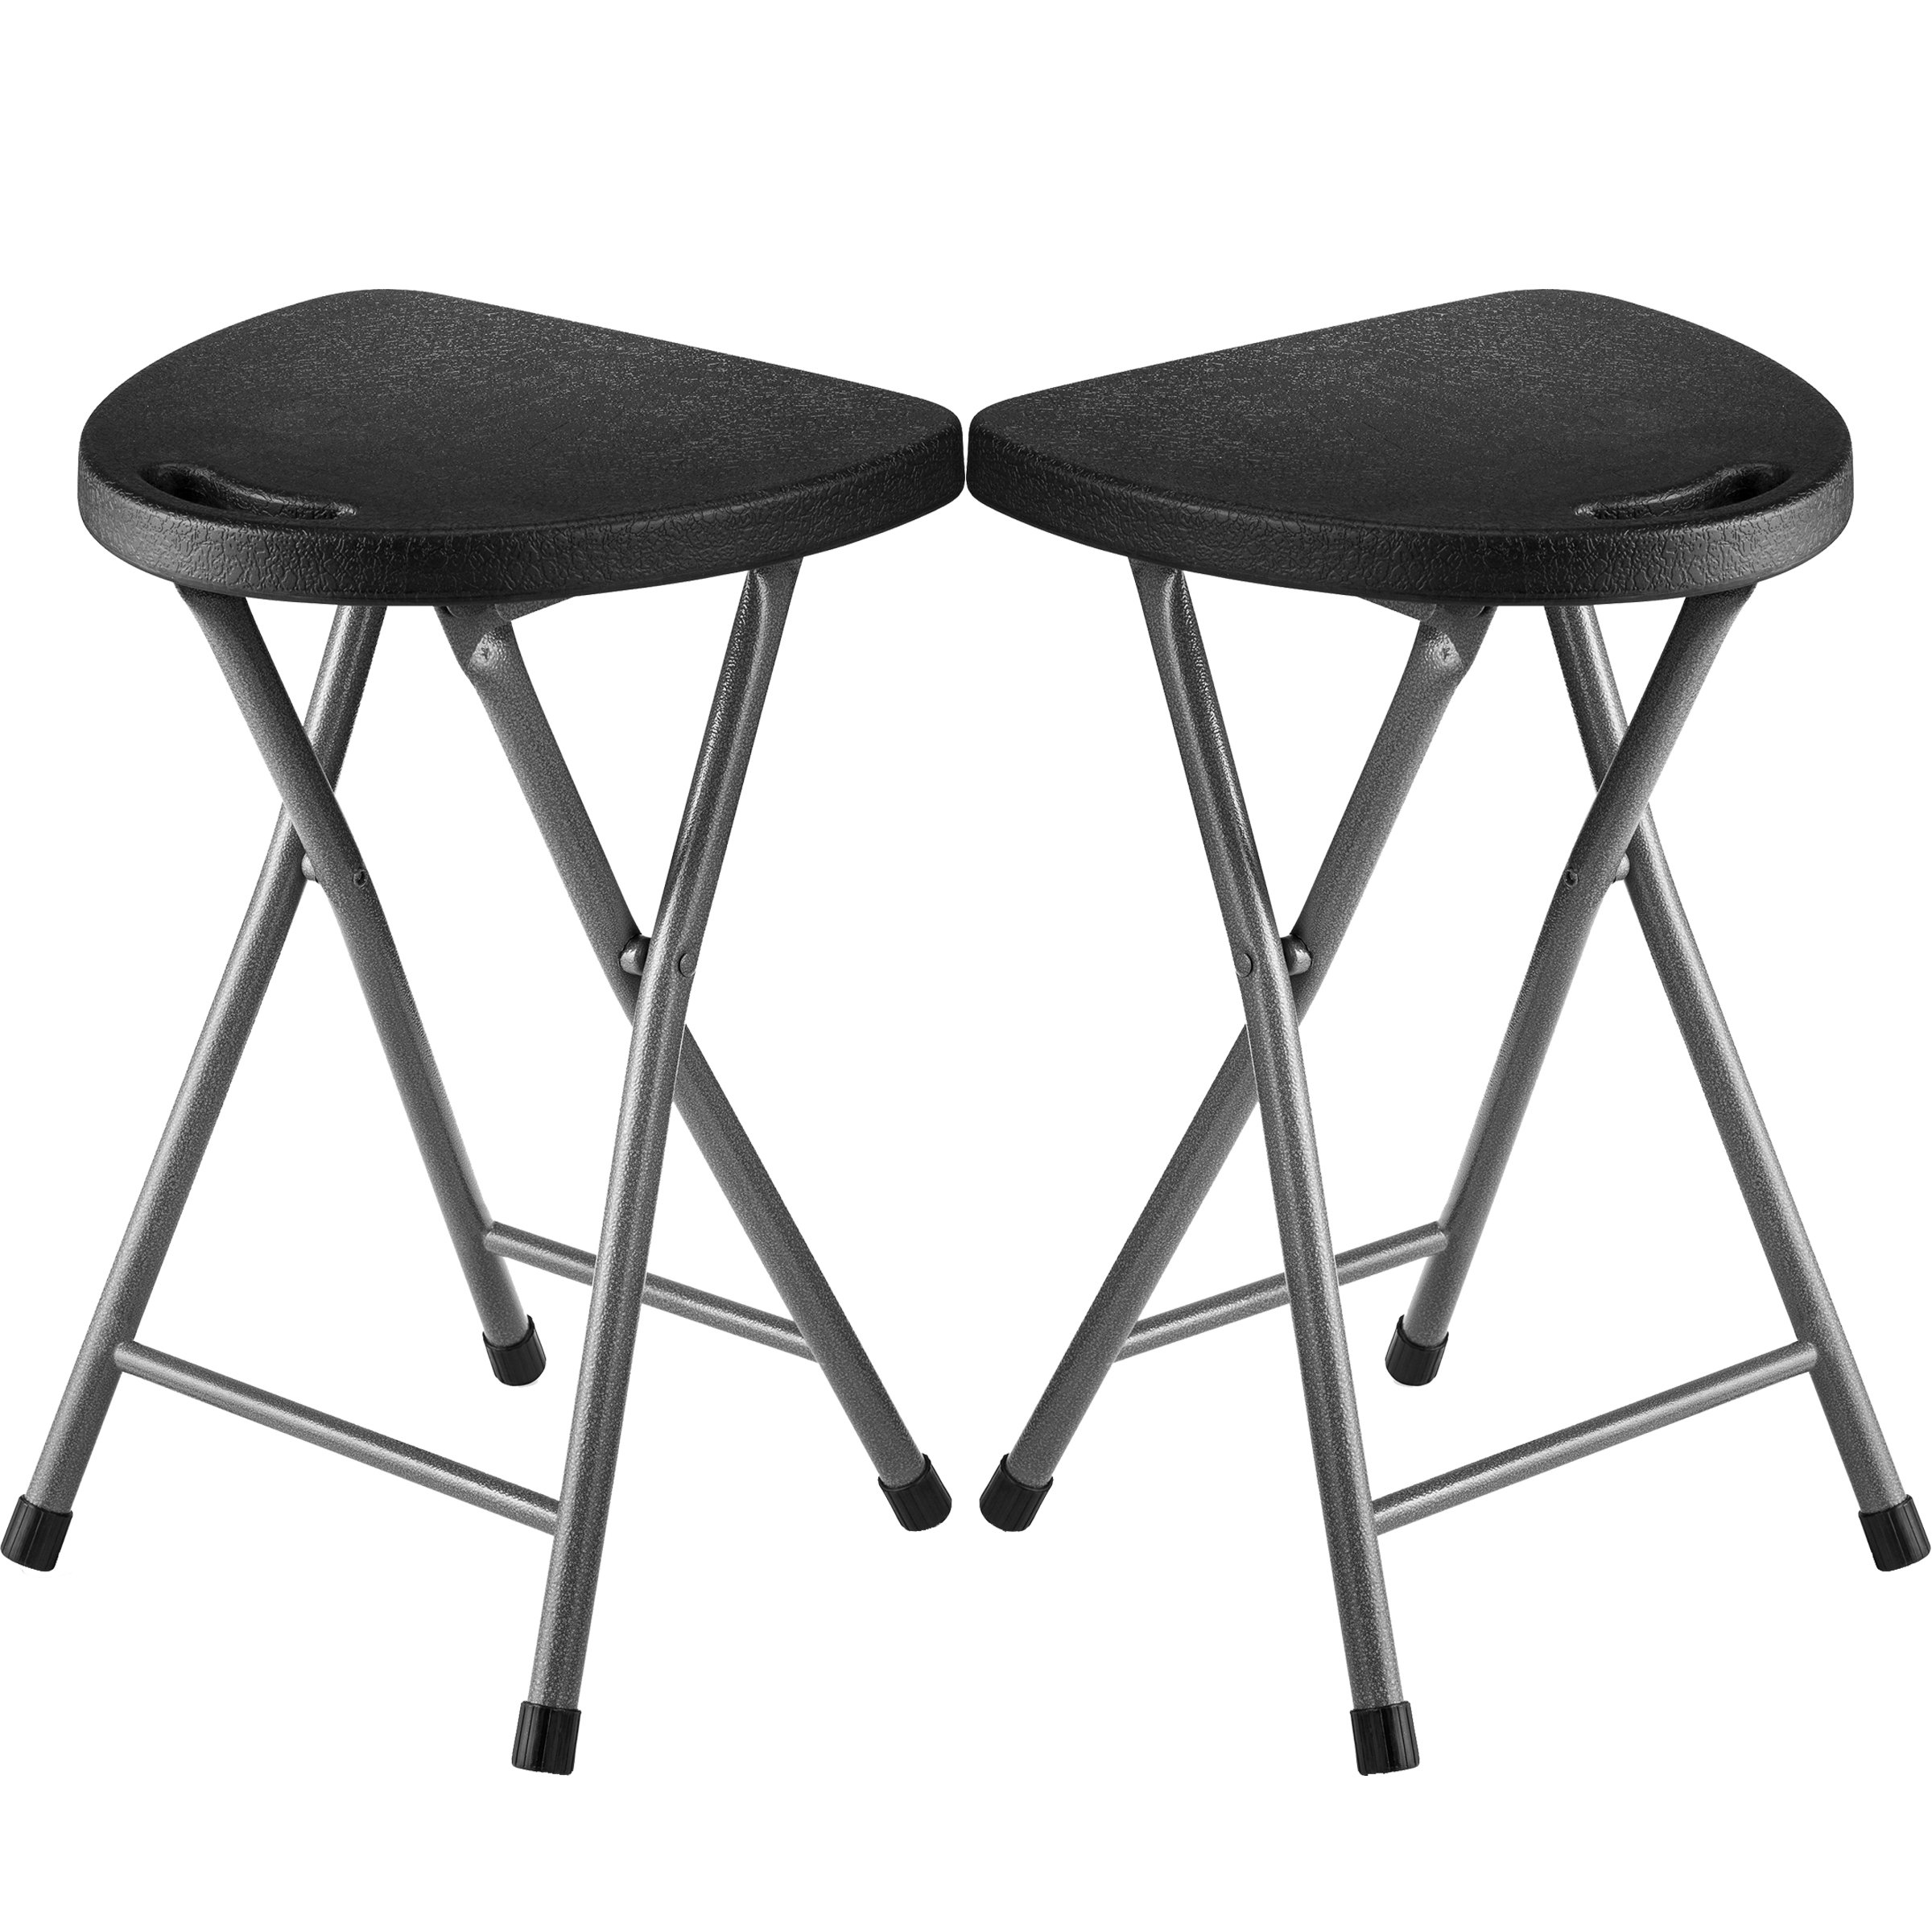 Zimmer Folding Stool (Set of 2) Portable Plastic Chair with Durable Steel Frame Legs for 220 Pound Capacity, Easy Carry Handle, Weather and Impact Resistant for Indoor/Outdoor Use, 18-Inch, Black